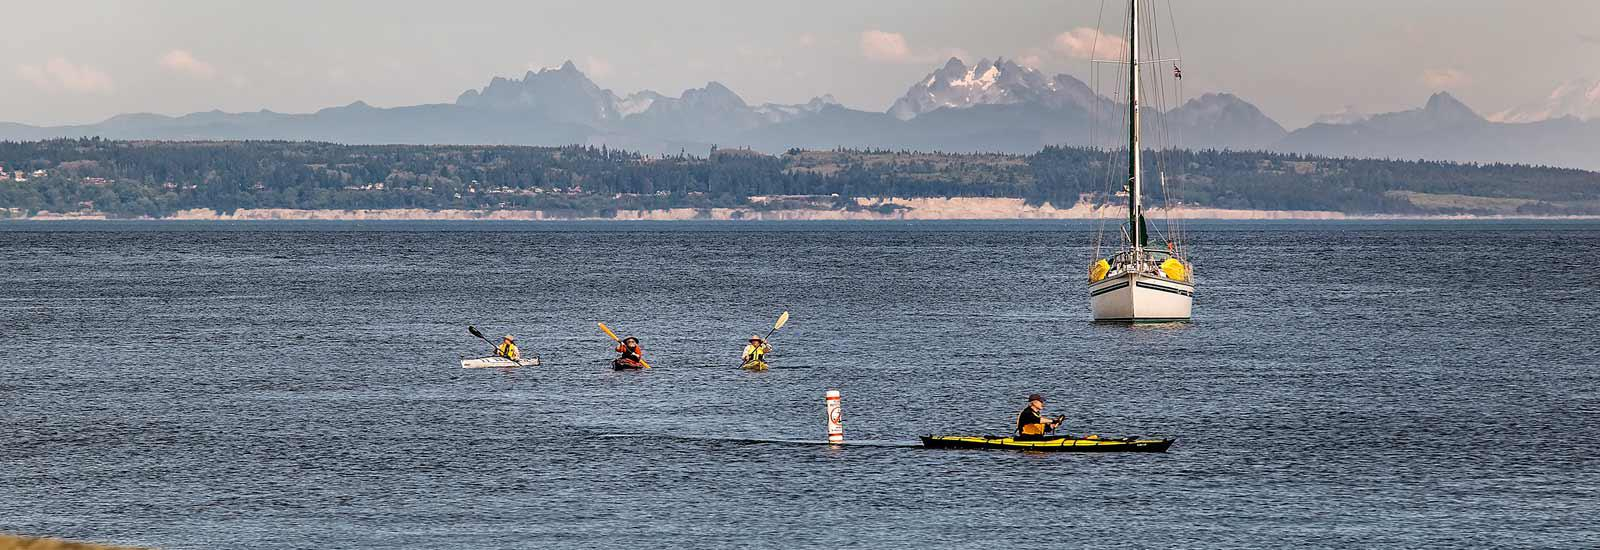 Historic Puget Sound access